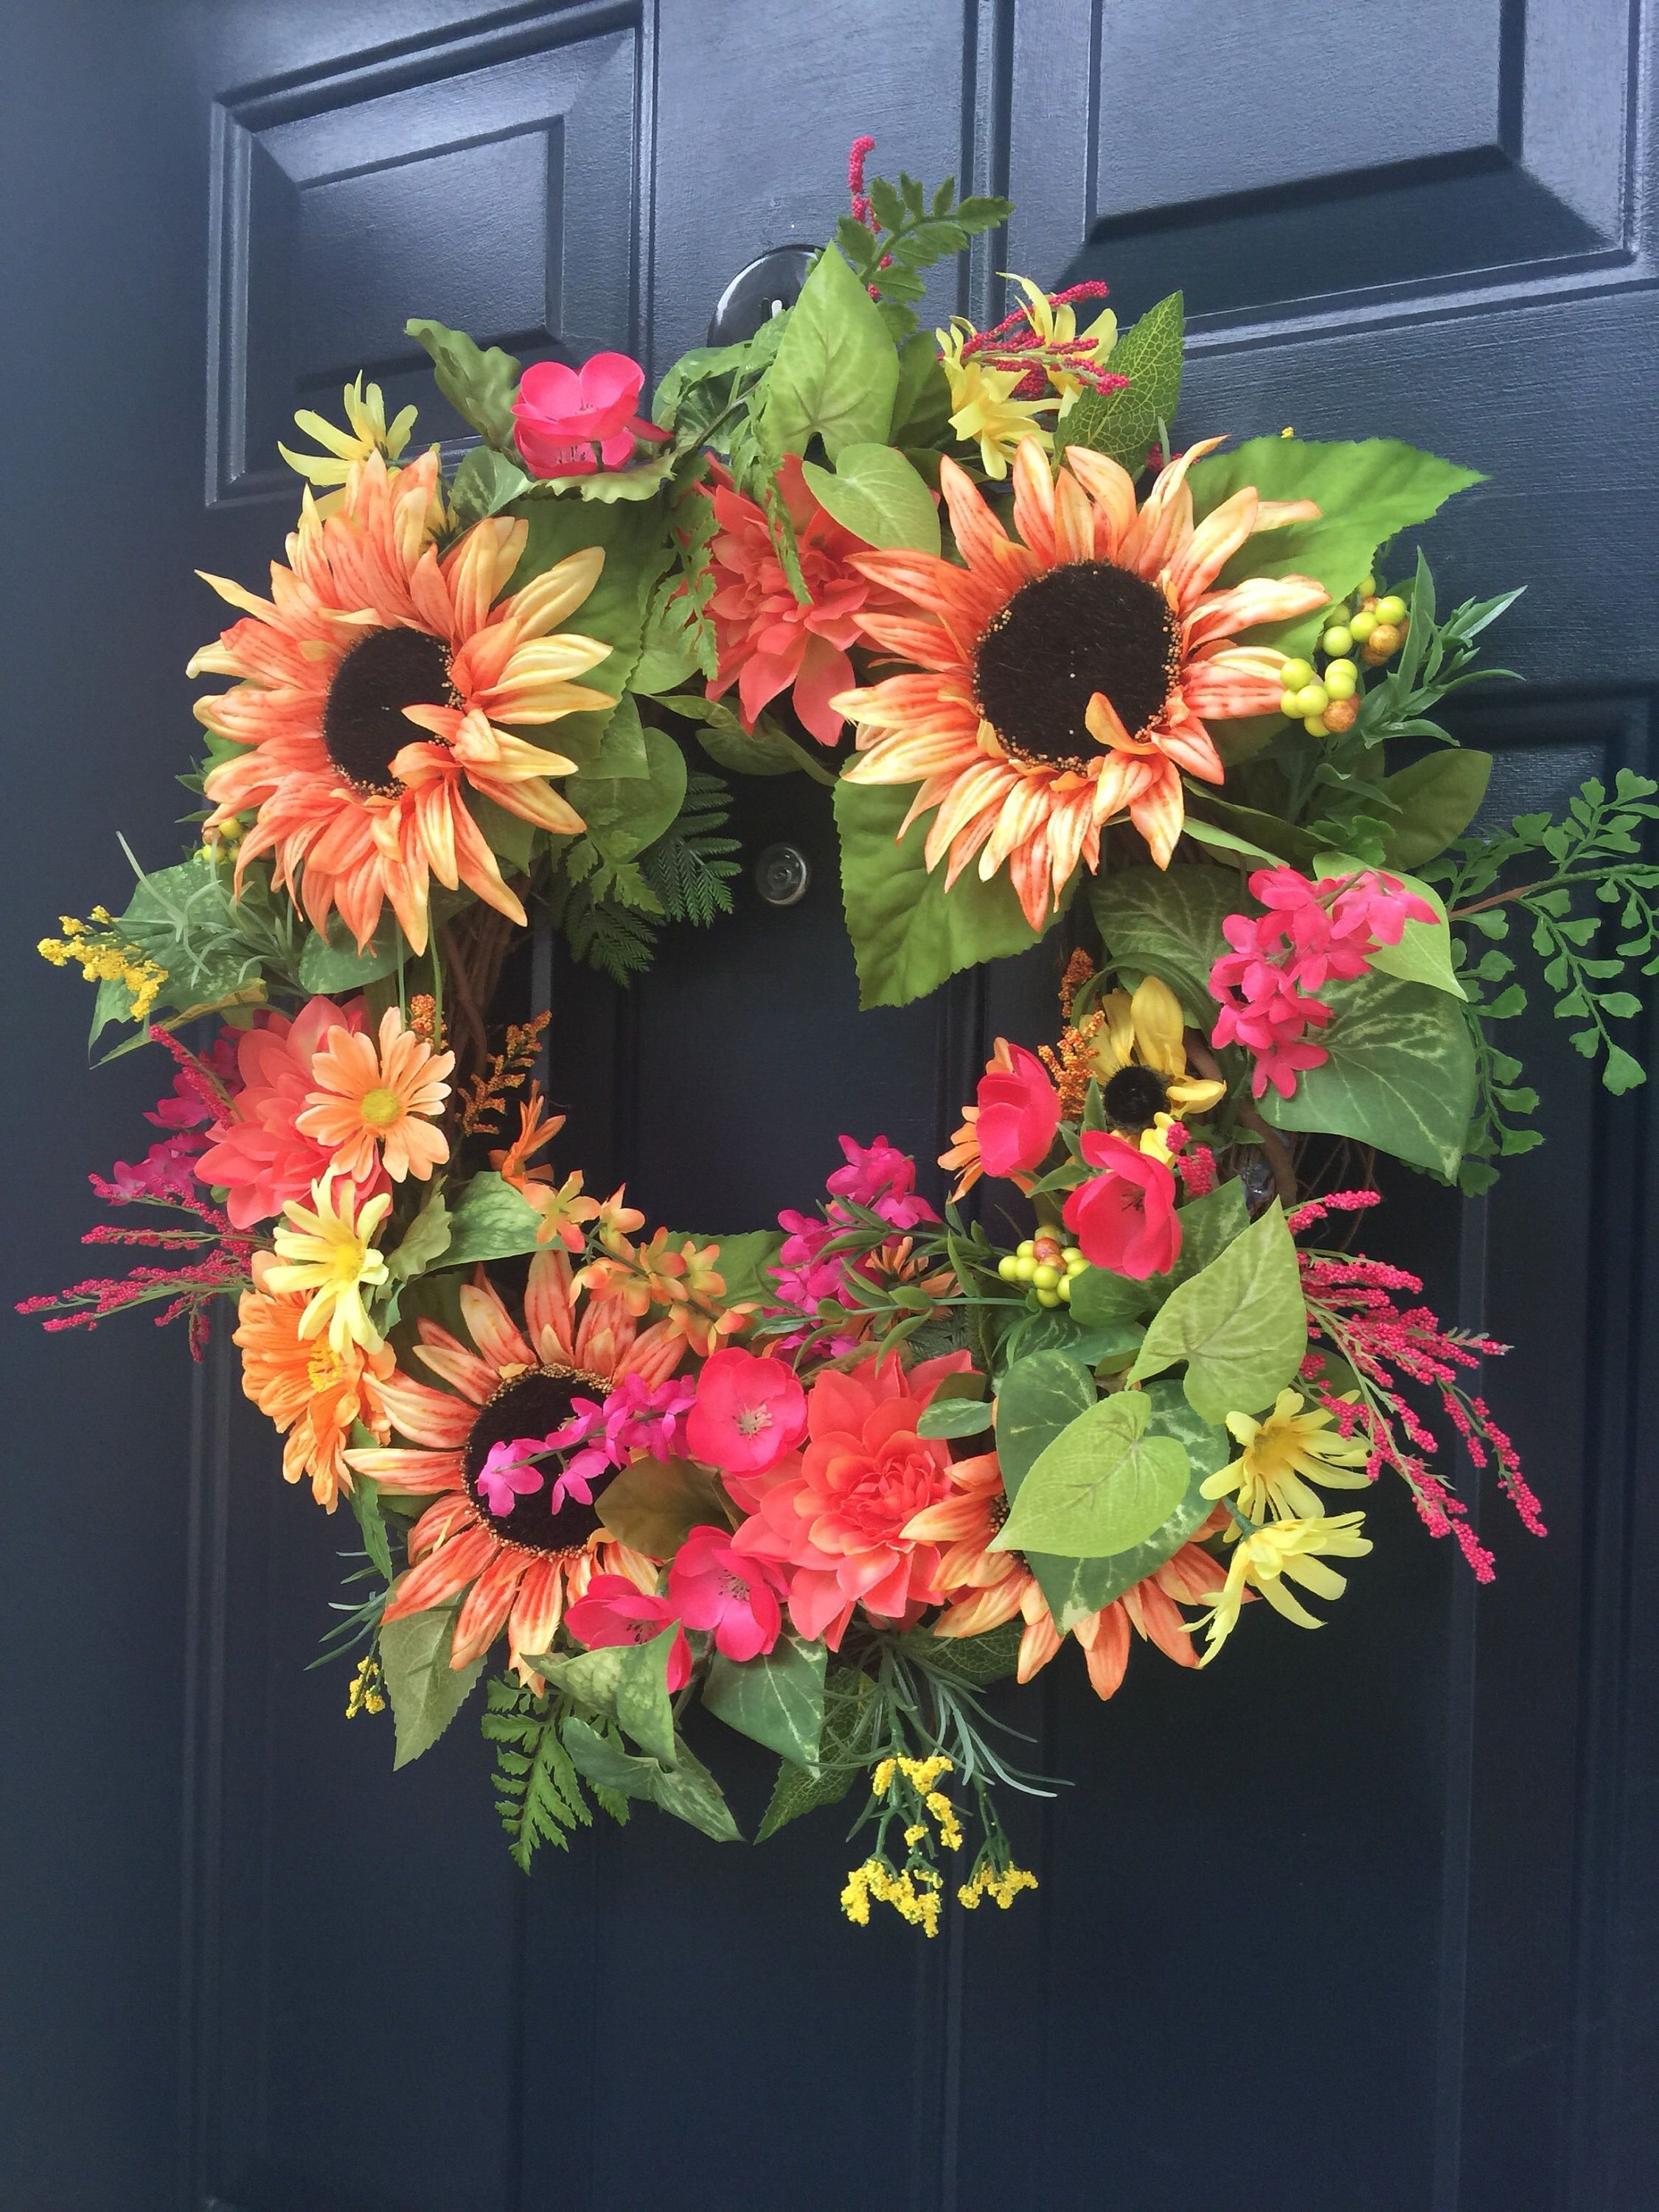 Peach Sunflower Wreath For Front Door, Summer Sunflowers Door Wreath,